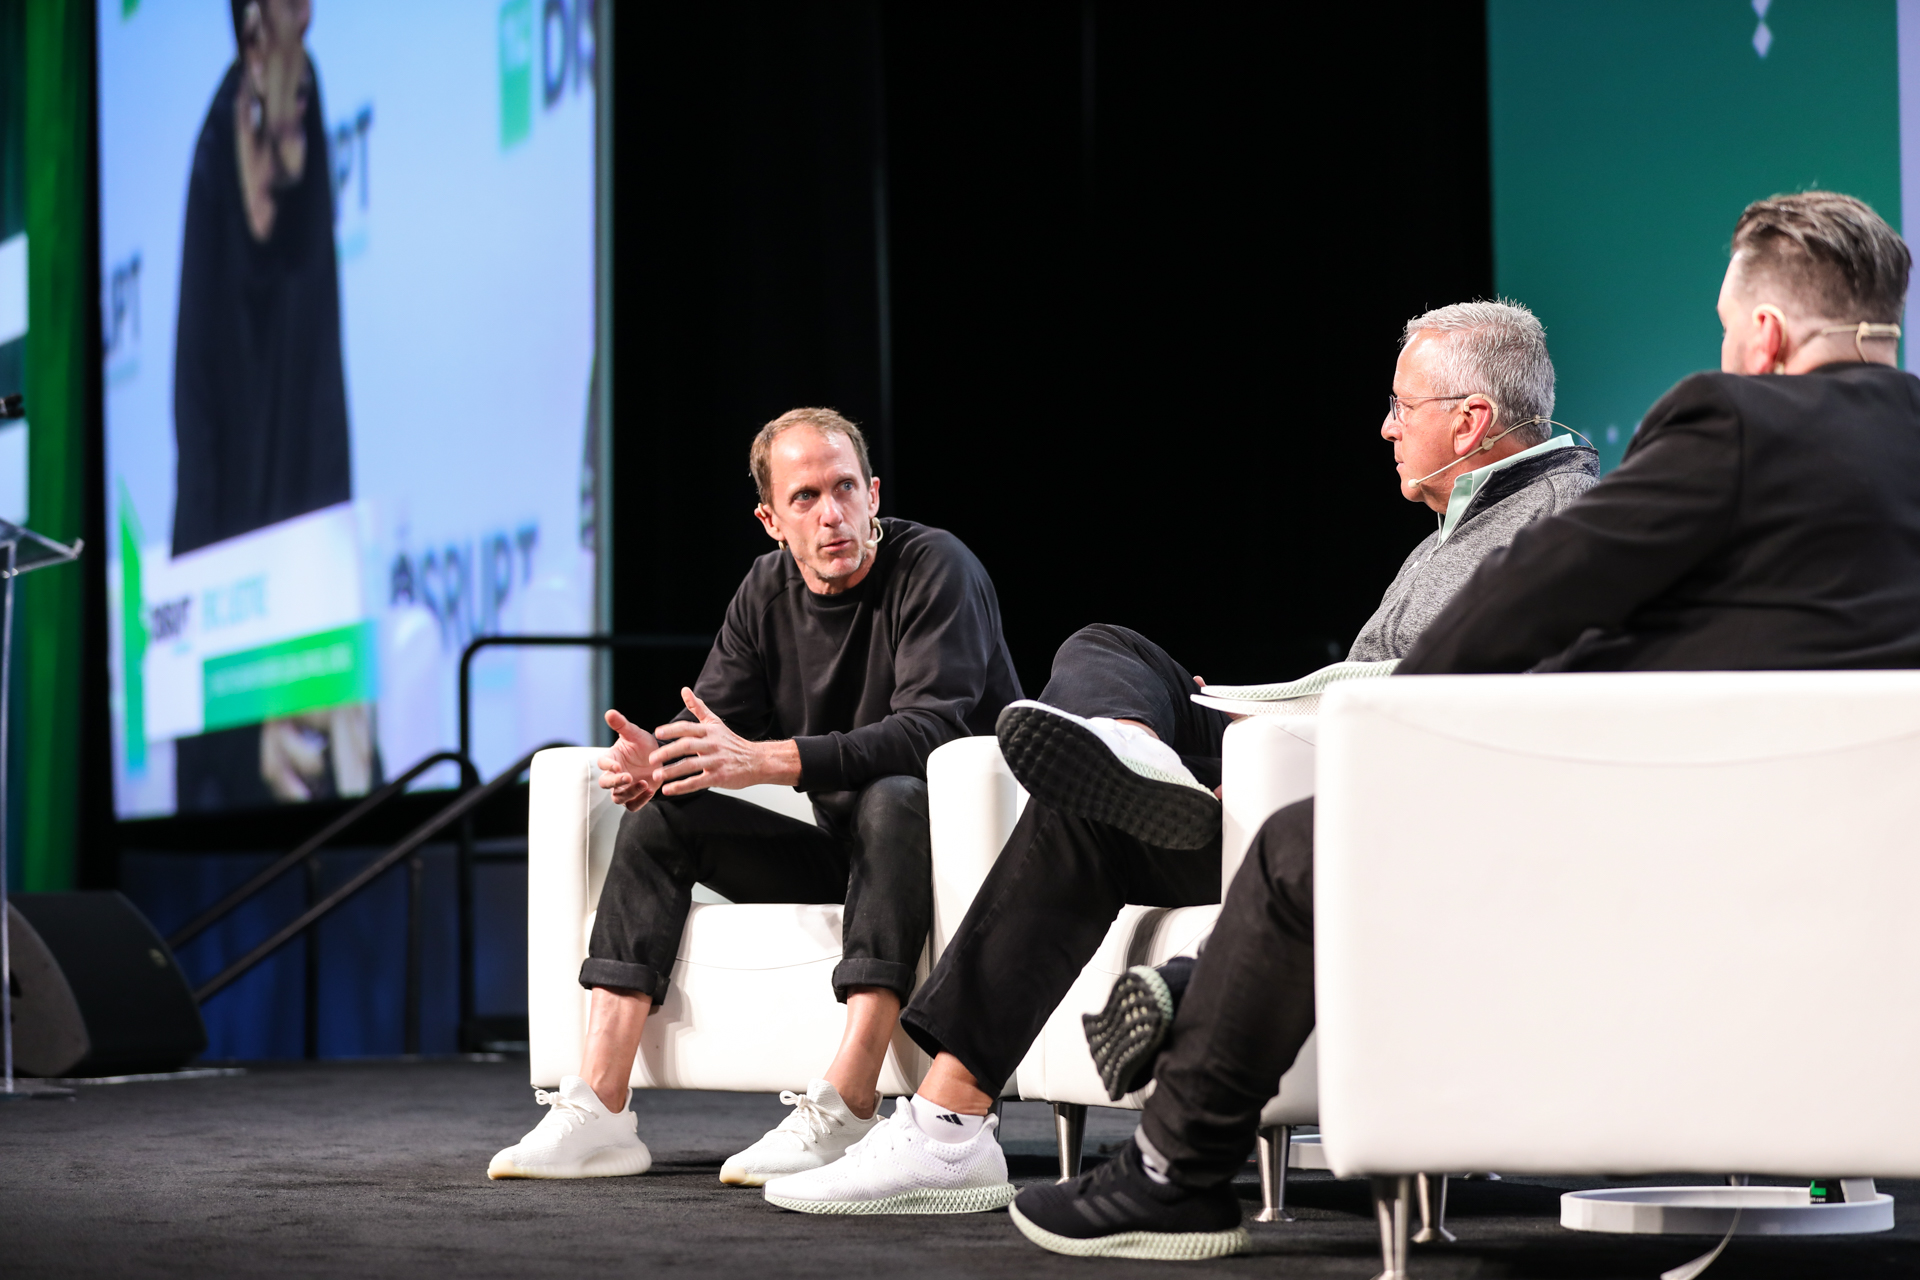 How Adidas and Carbon are changing the sneaker supply chain | TechCrunch